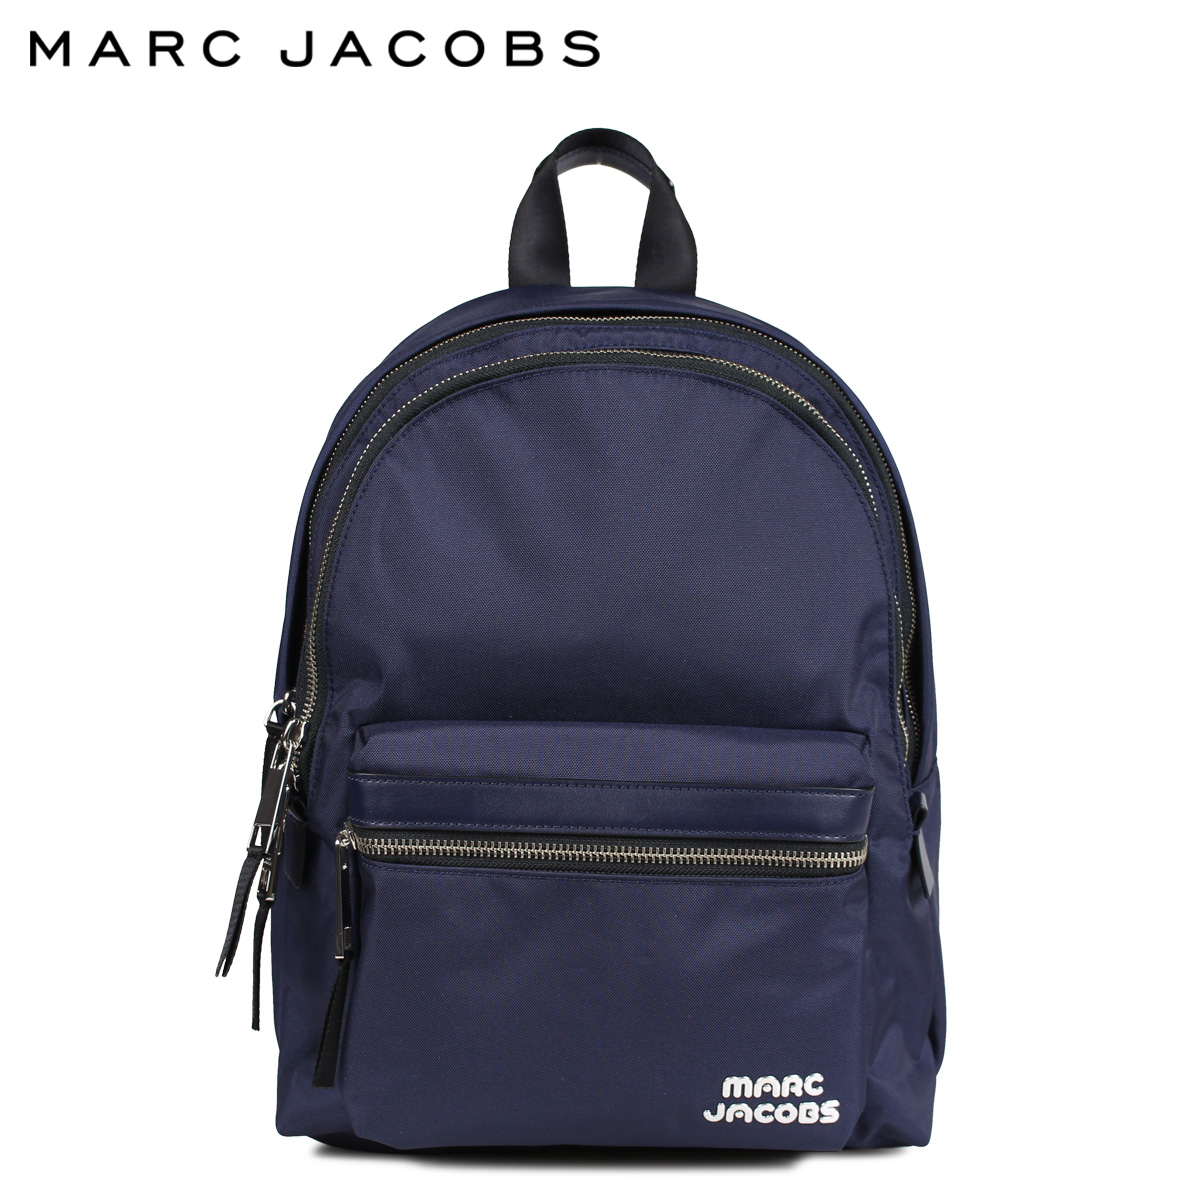 MARC JACOBS TREK PACK LARGE BACKPACK マークジェイコブス リュック バッグ バックパック レディース メンズ ネイビー M0014030